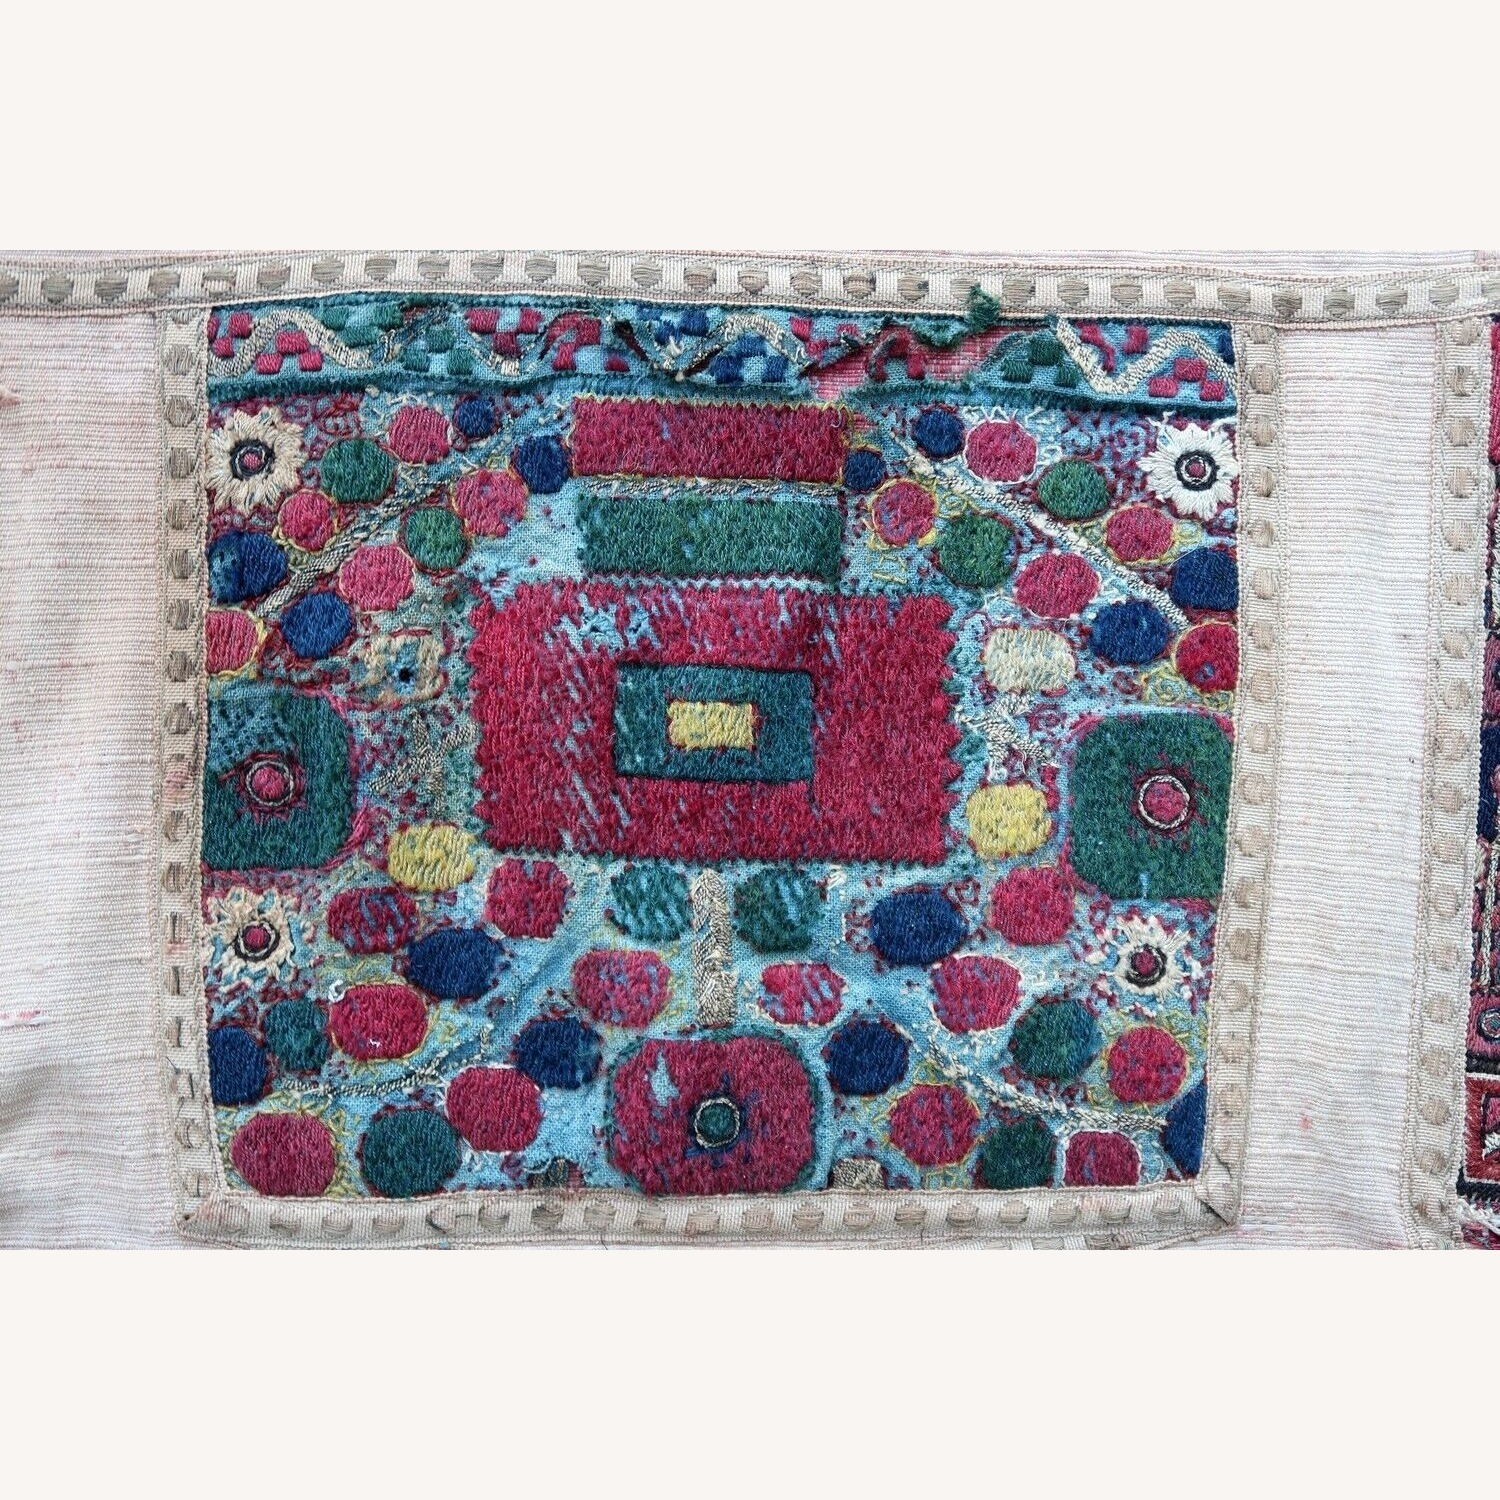 Handmade antique Greek embroidery, 1P87 - image-3